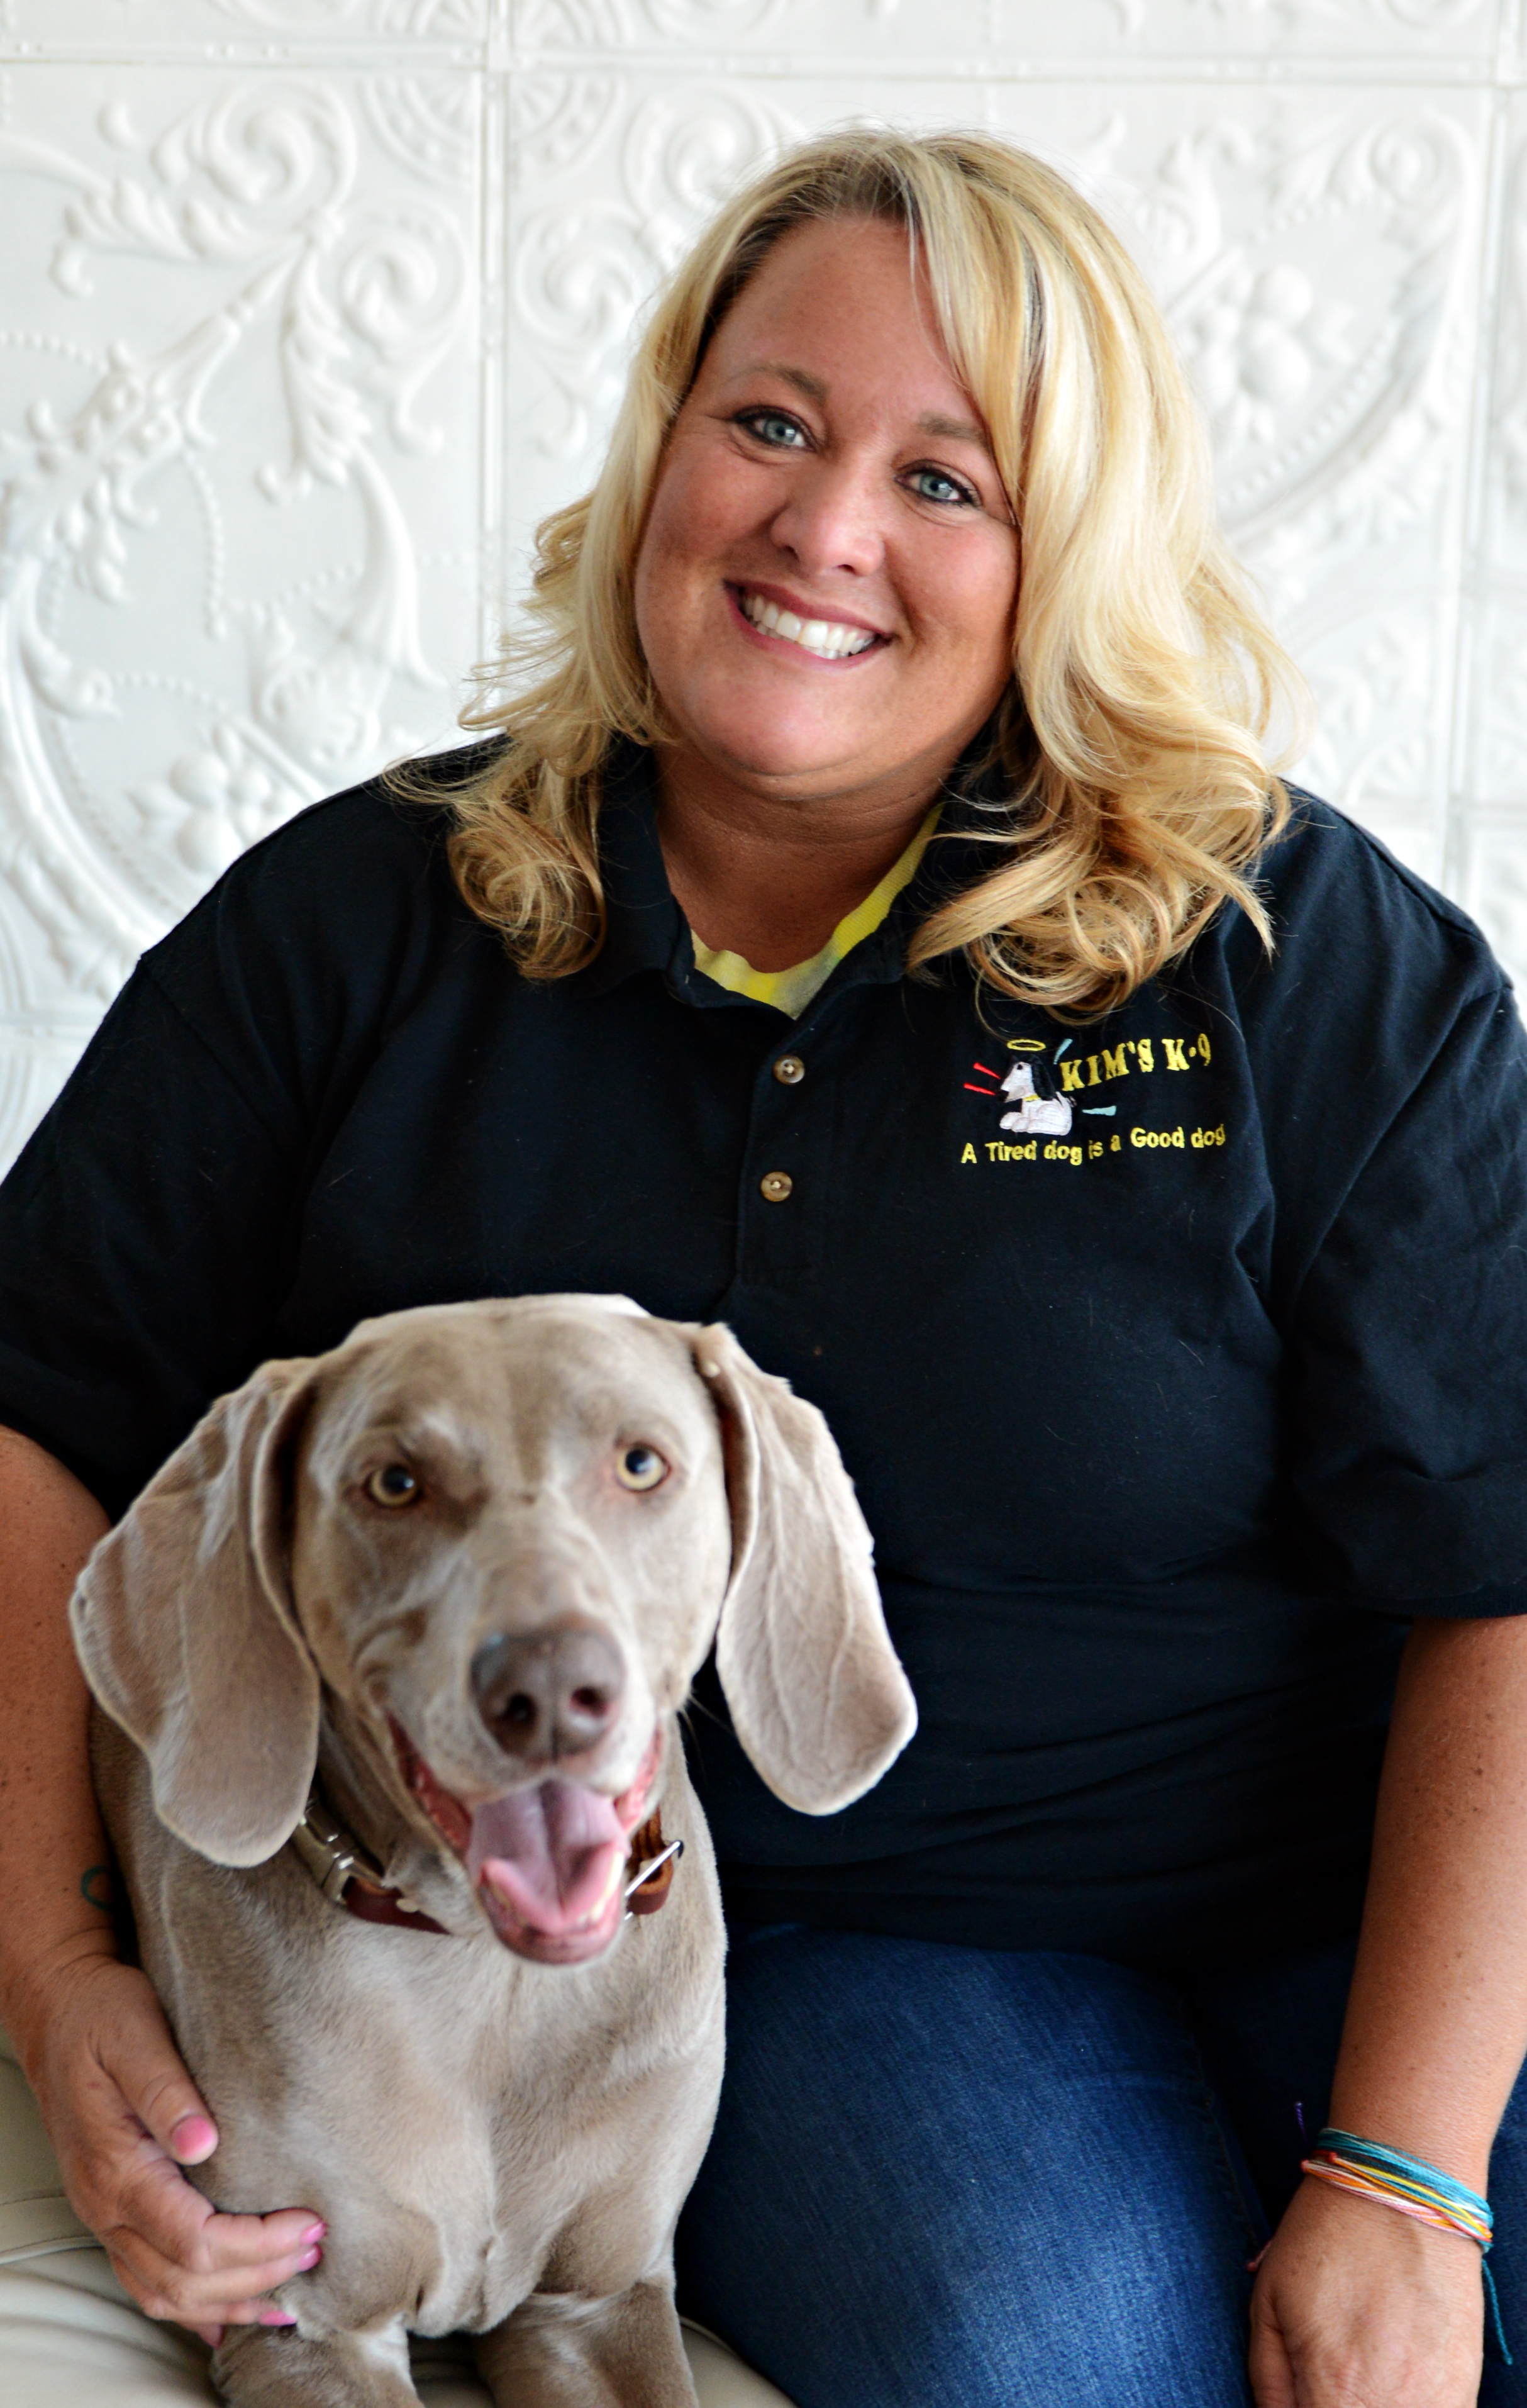 Kelli Wiseman- General Manager - Kelli has worked in management for over 20 years. Has been with Kim's K-9 for just a year now and loves working with the customers and dogs. Gives every dog that walks through the door a fun nickname and uses those nicknames when she gives them extra snuggles. She has a passion for photography and a love for all animals. Fur mom to Gracie and Ernie and two teenage daughters Georgia and Laci.